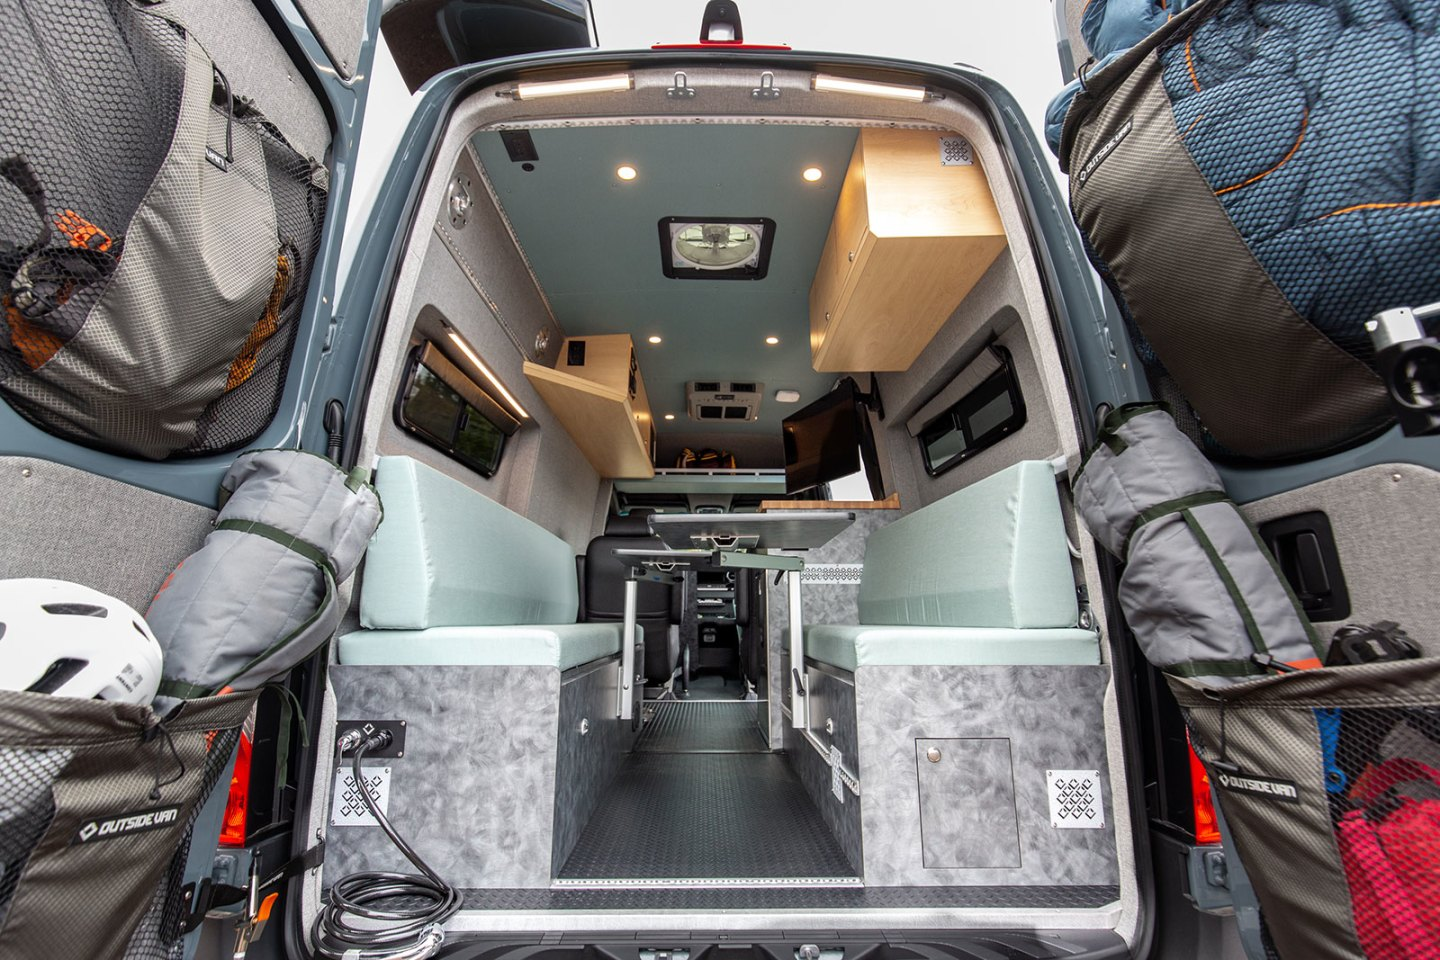 The Blue Sky van's flexible rear space converts from dining lounge to bunk beds